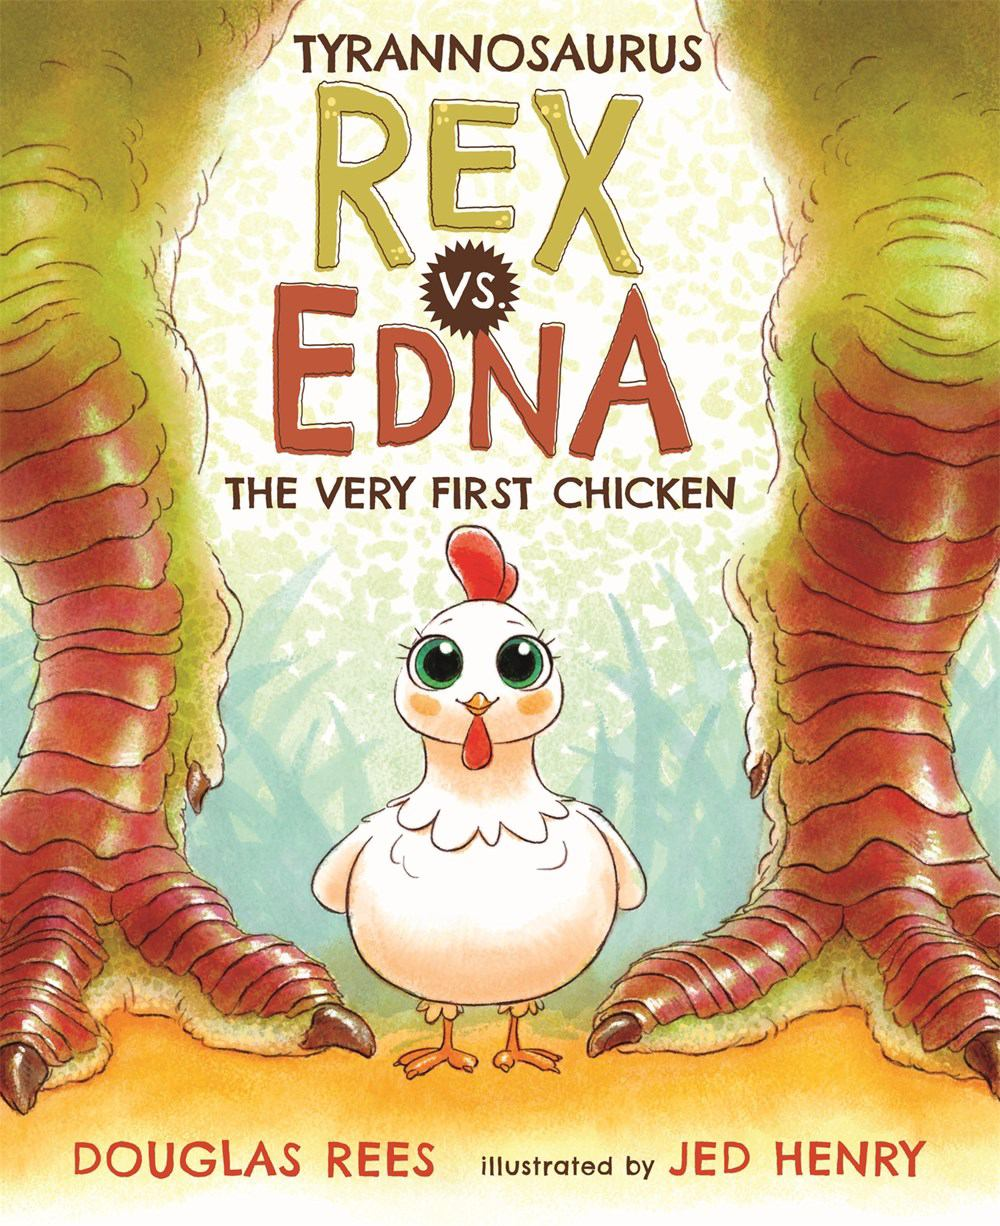 Image for Tyrannosaurus Rex vs. Edna, the Very First Chicken